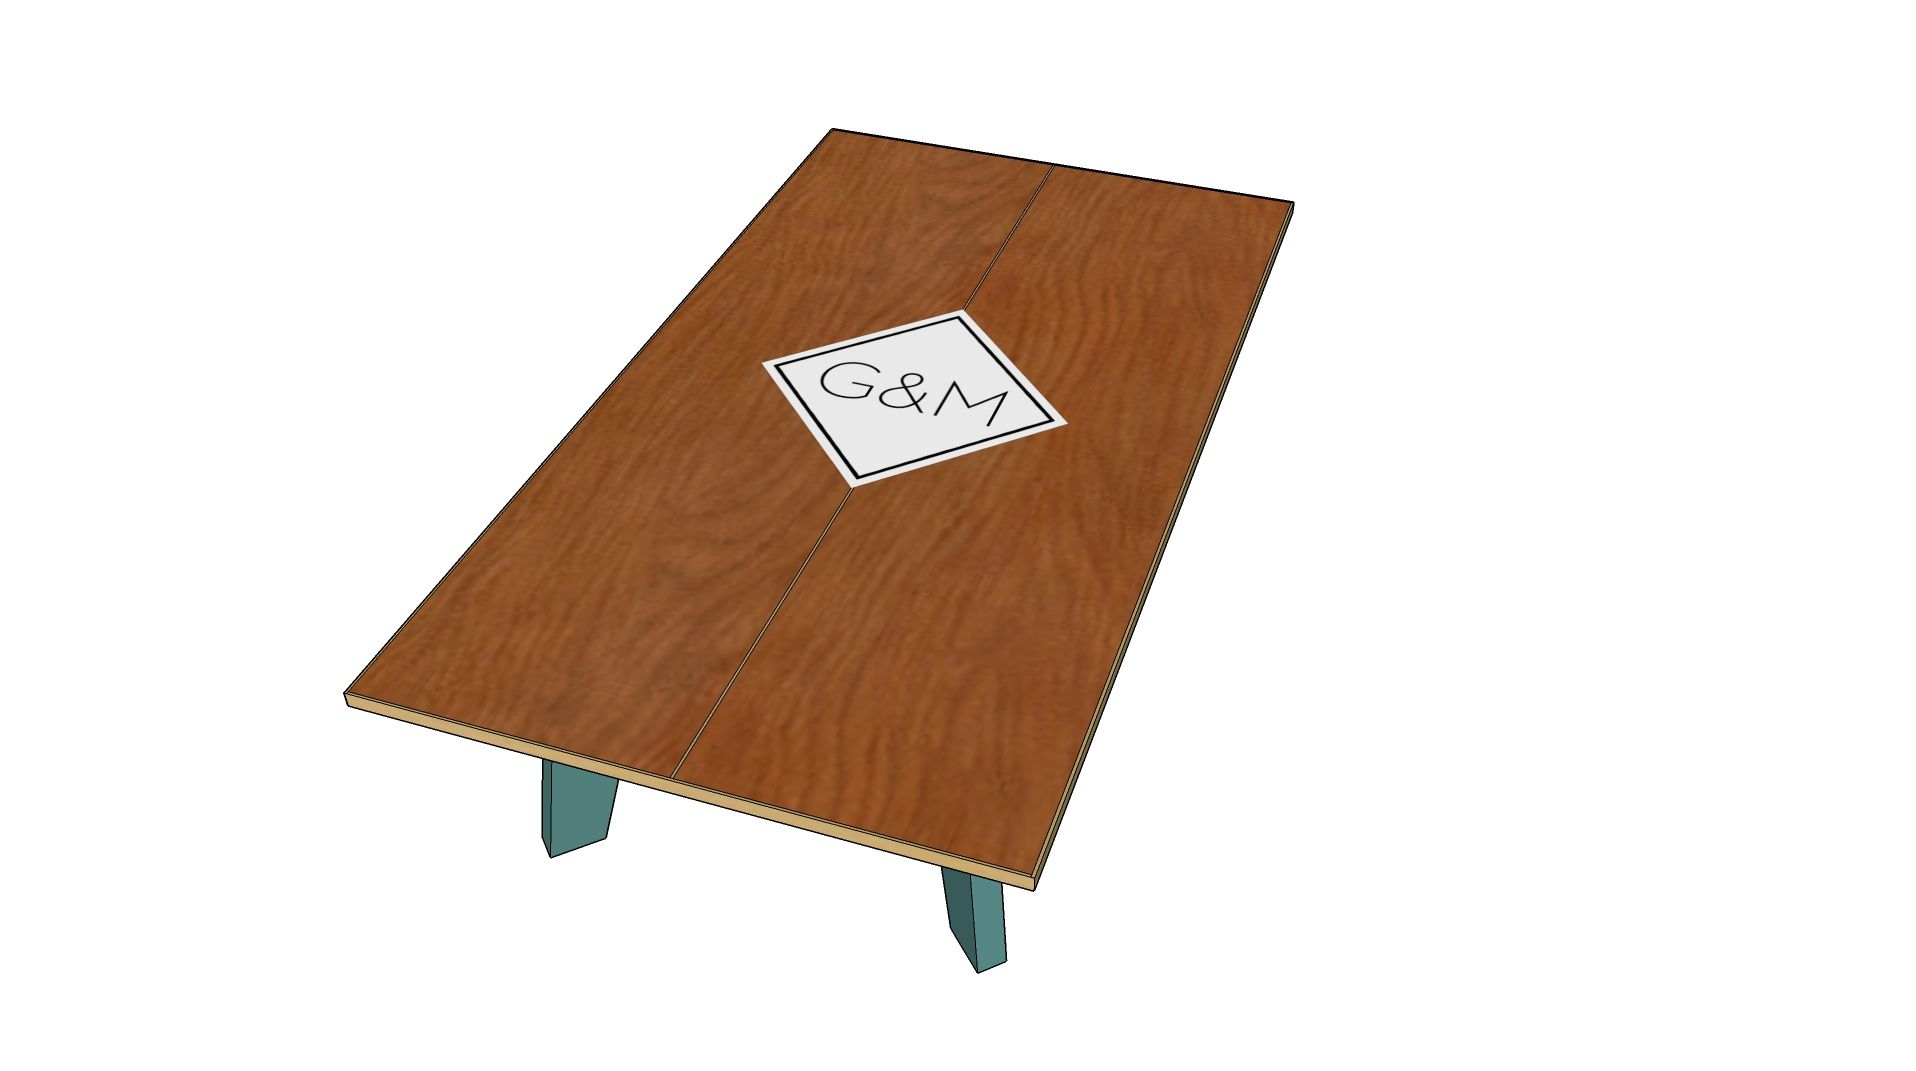 Ping Pong Conference Table